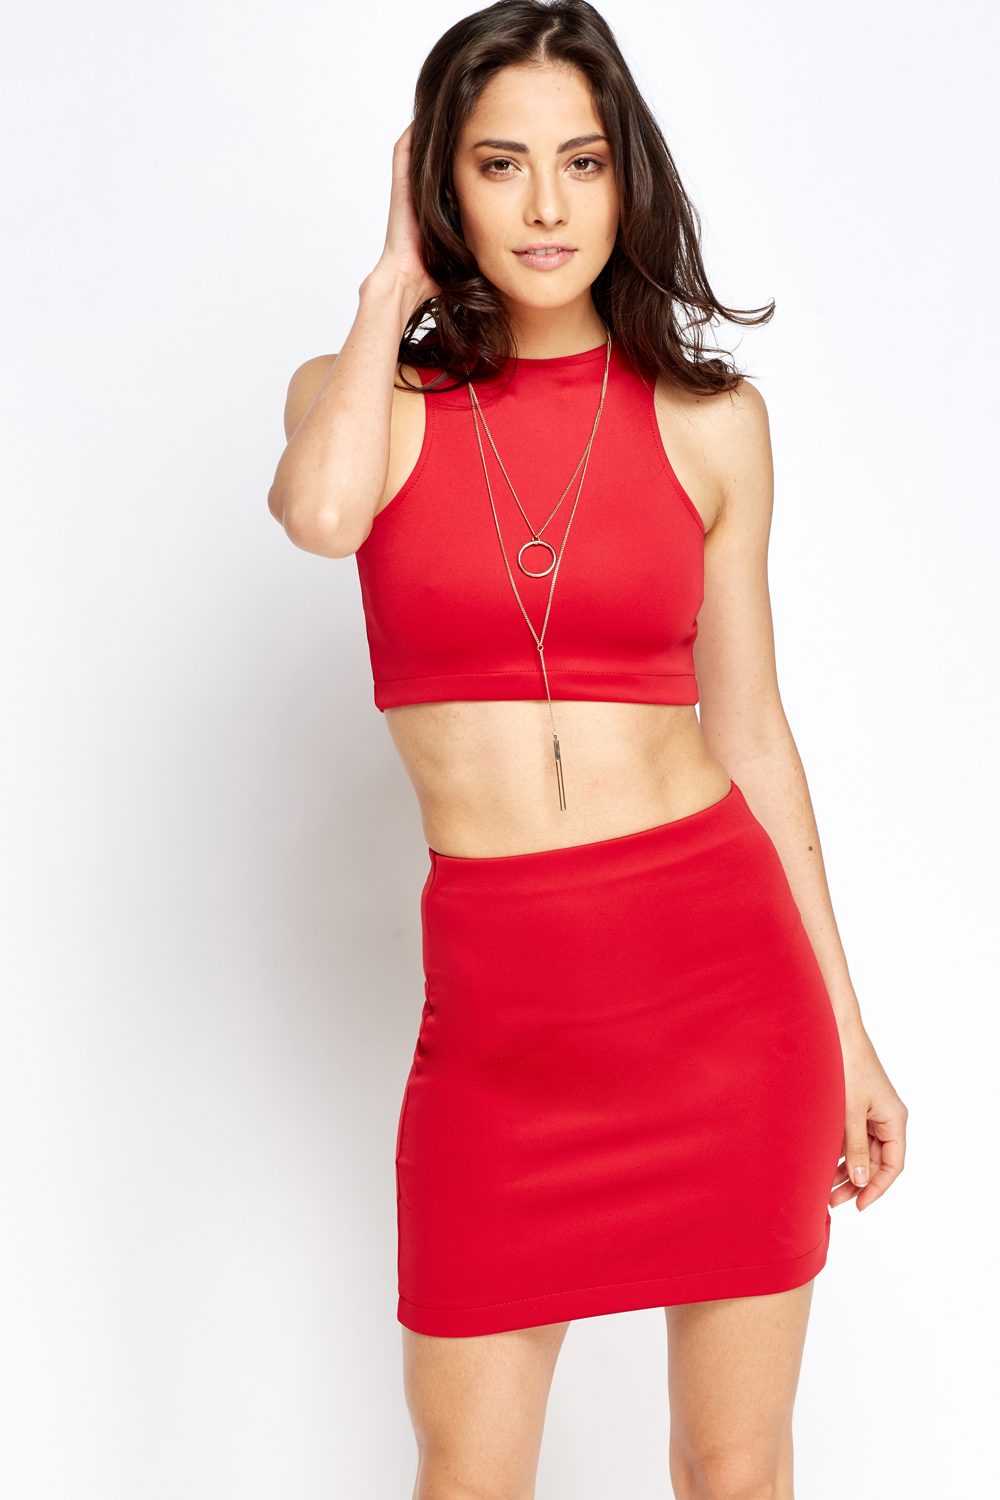 Bodycon Crop Top And Skirt Set - Just £5